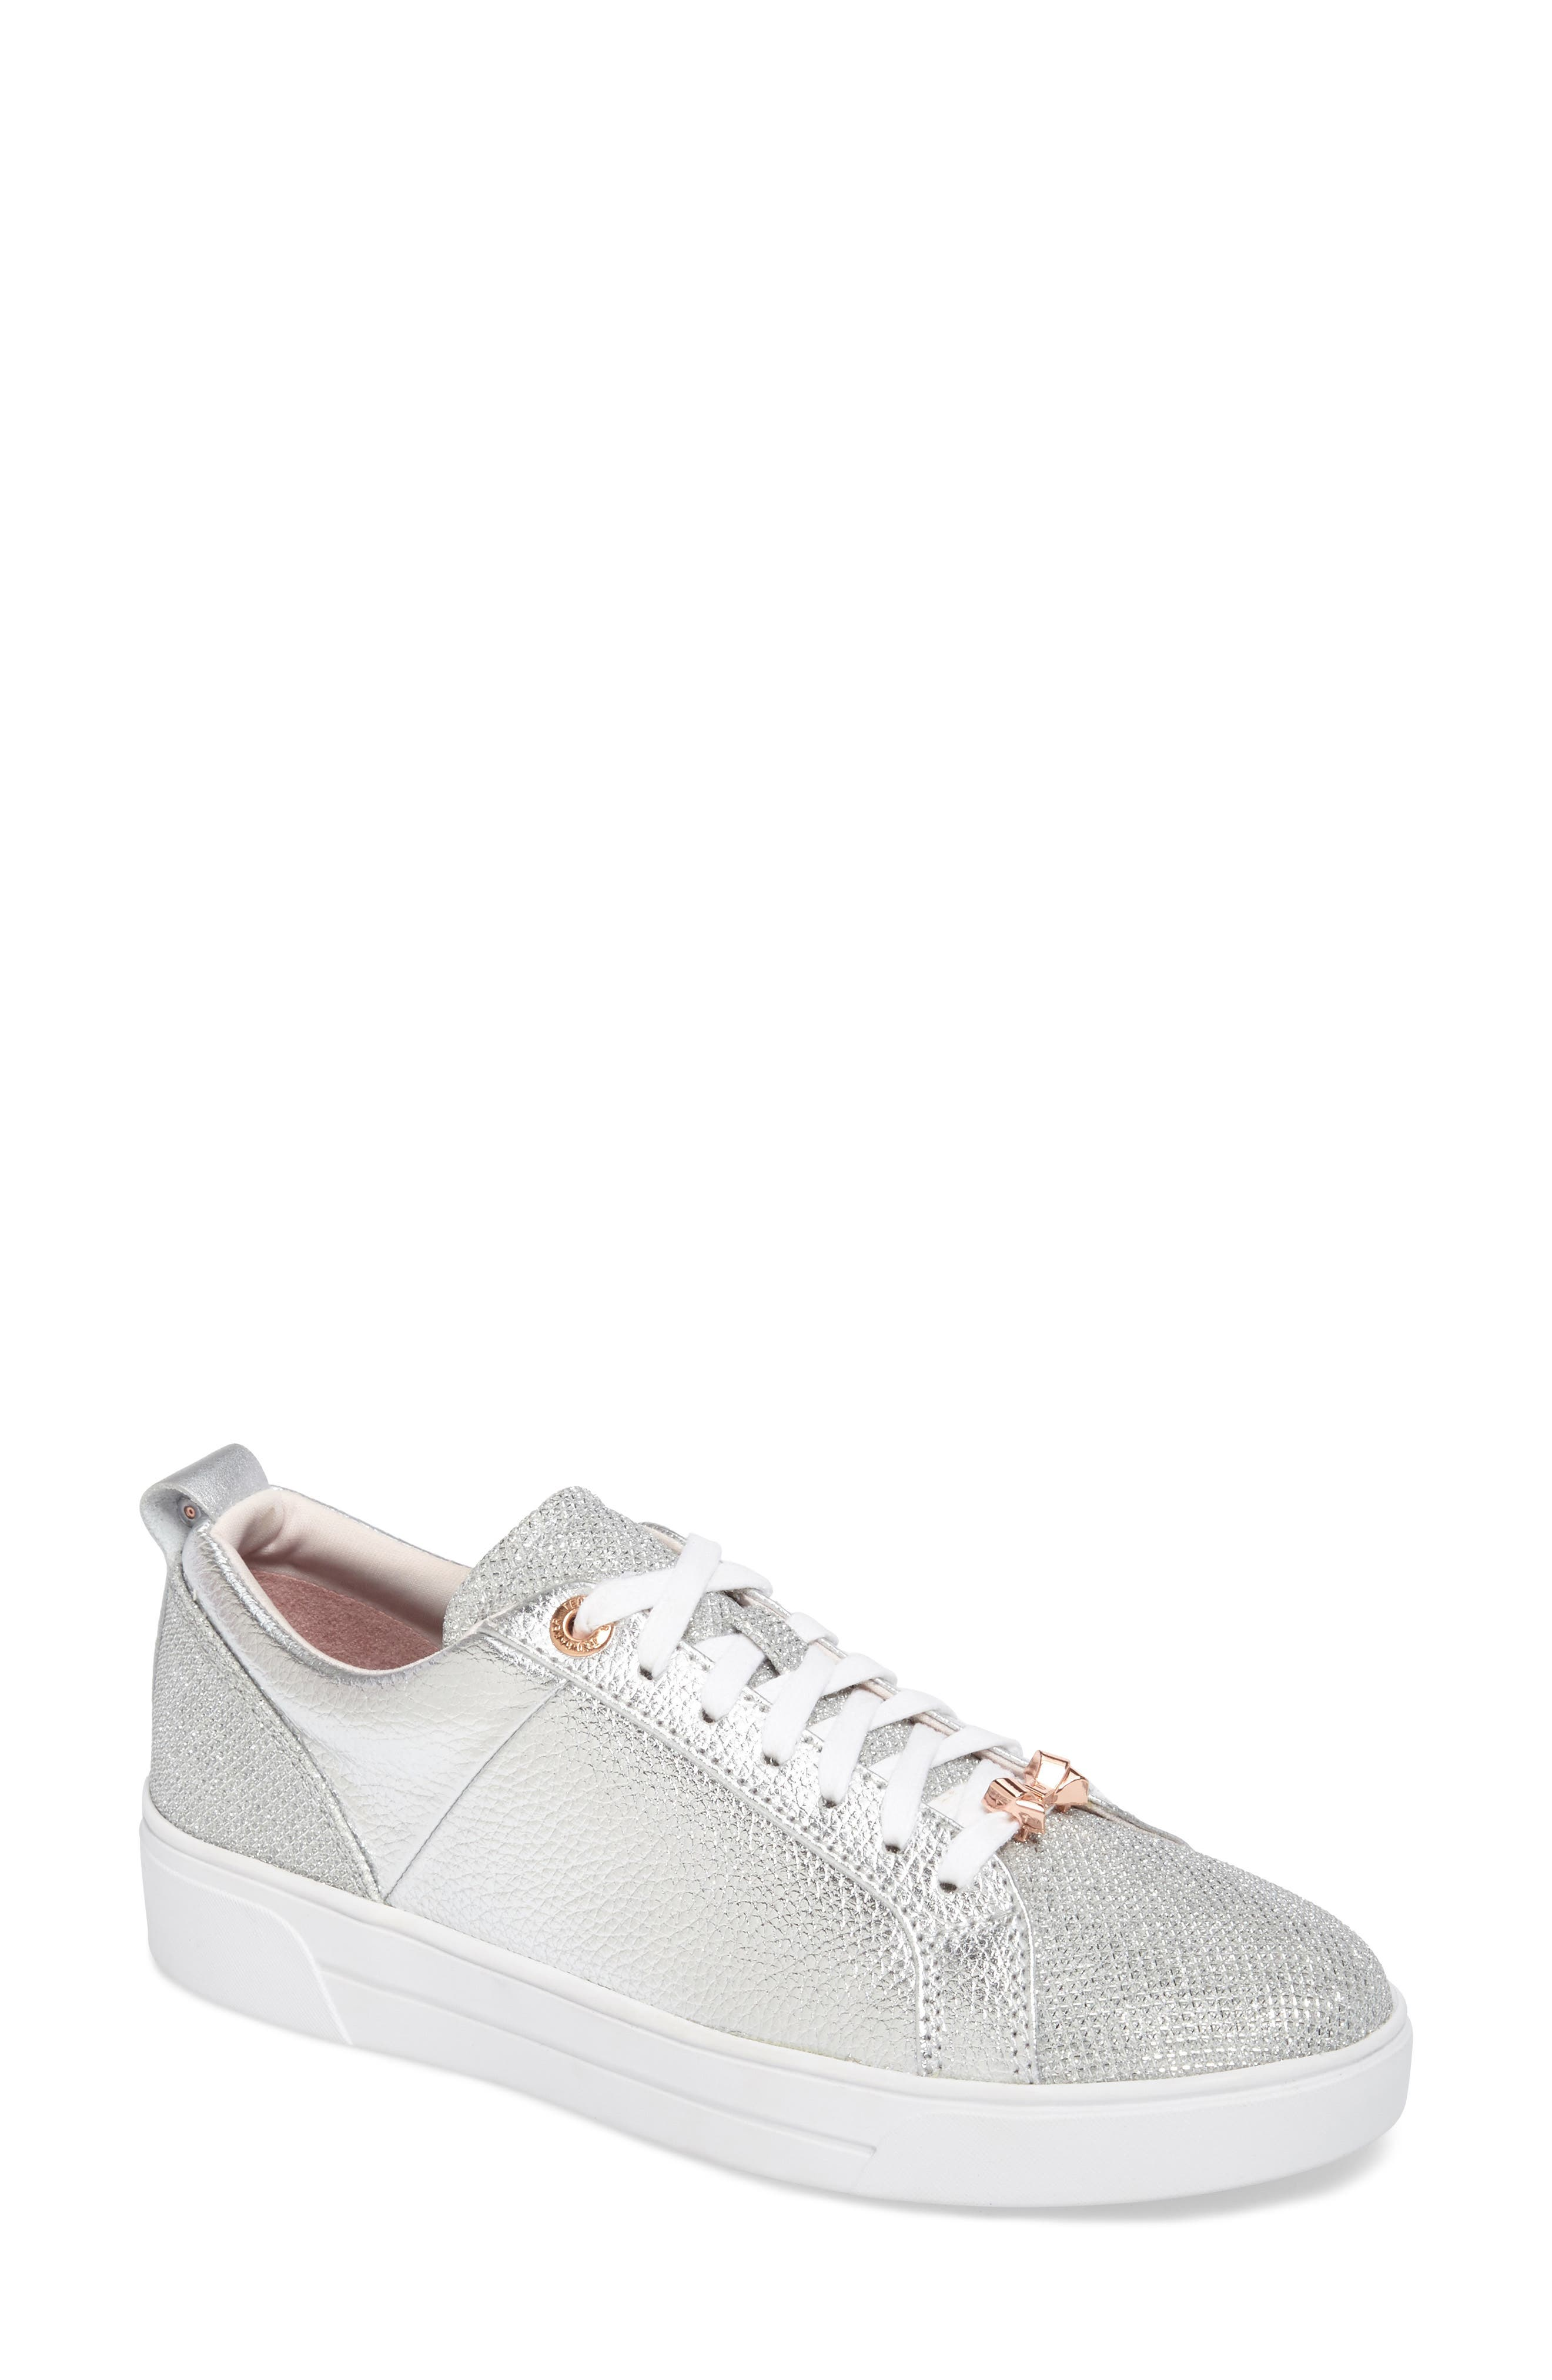 Kulei Sneaker,                             Main thumbnail 1, color,                             Silver Leather